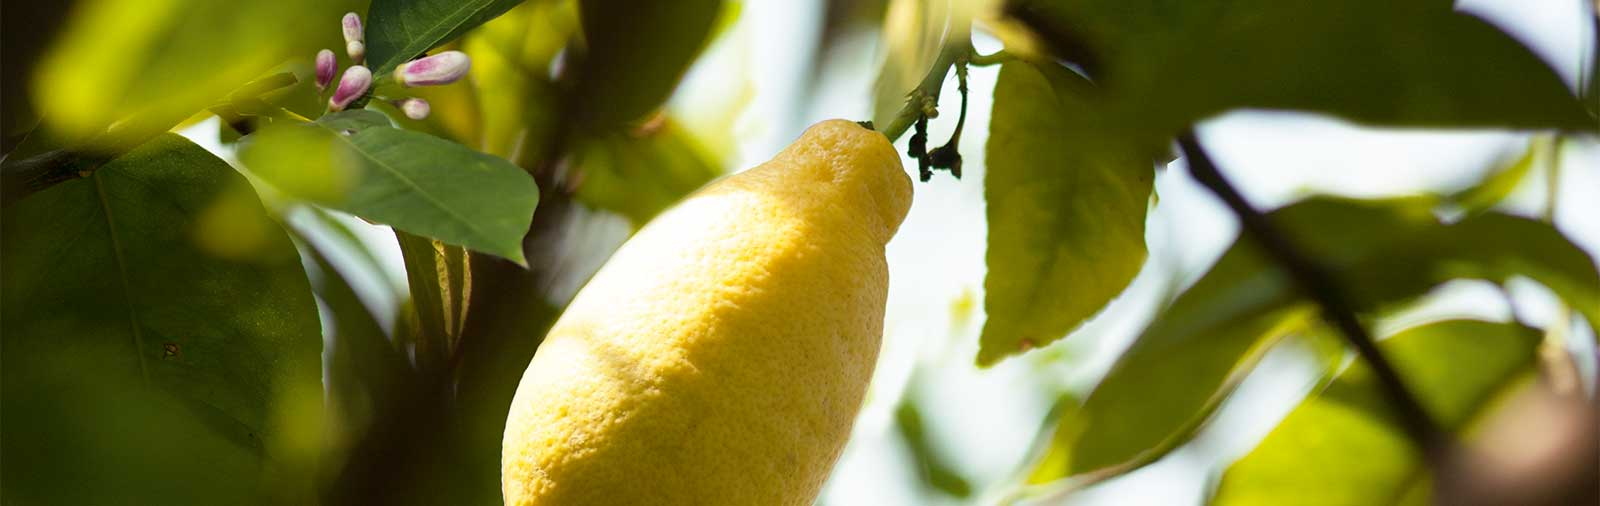 Lemon - Citrus limon L.